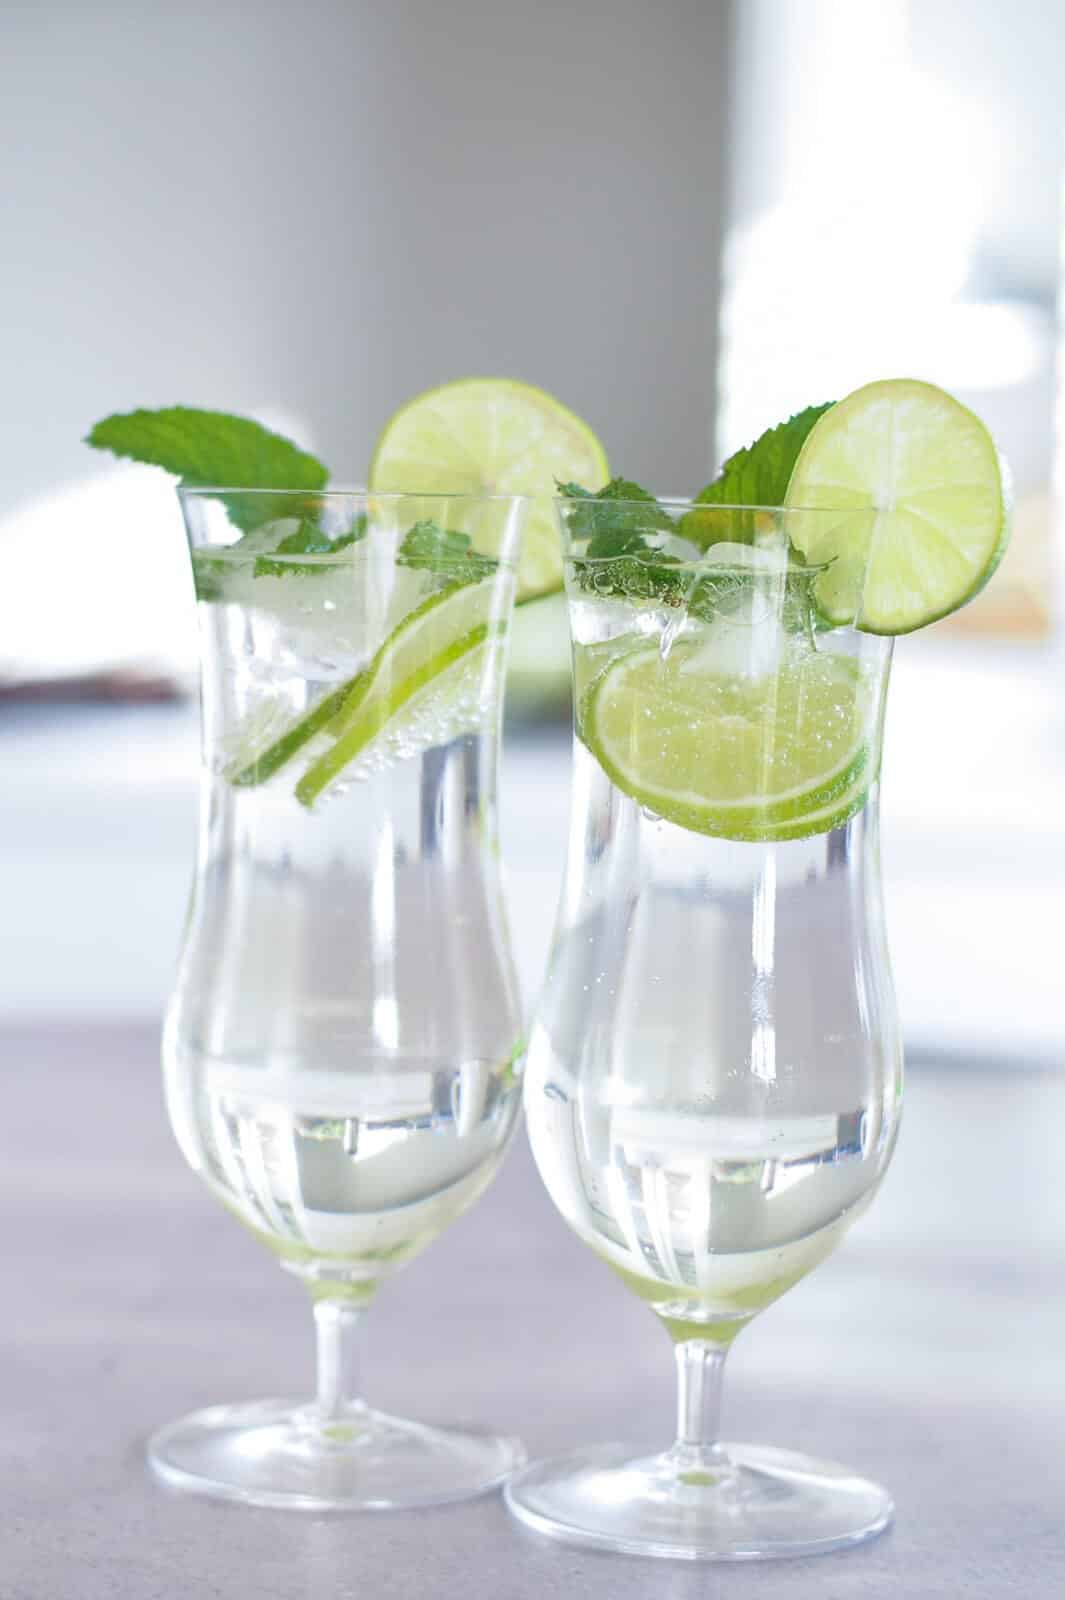 A table with wine glasses, with lime and mint